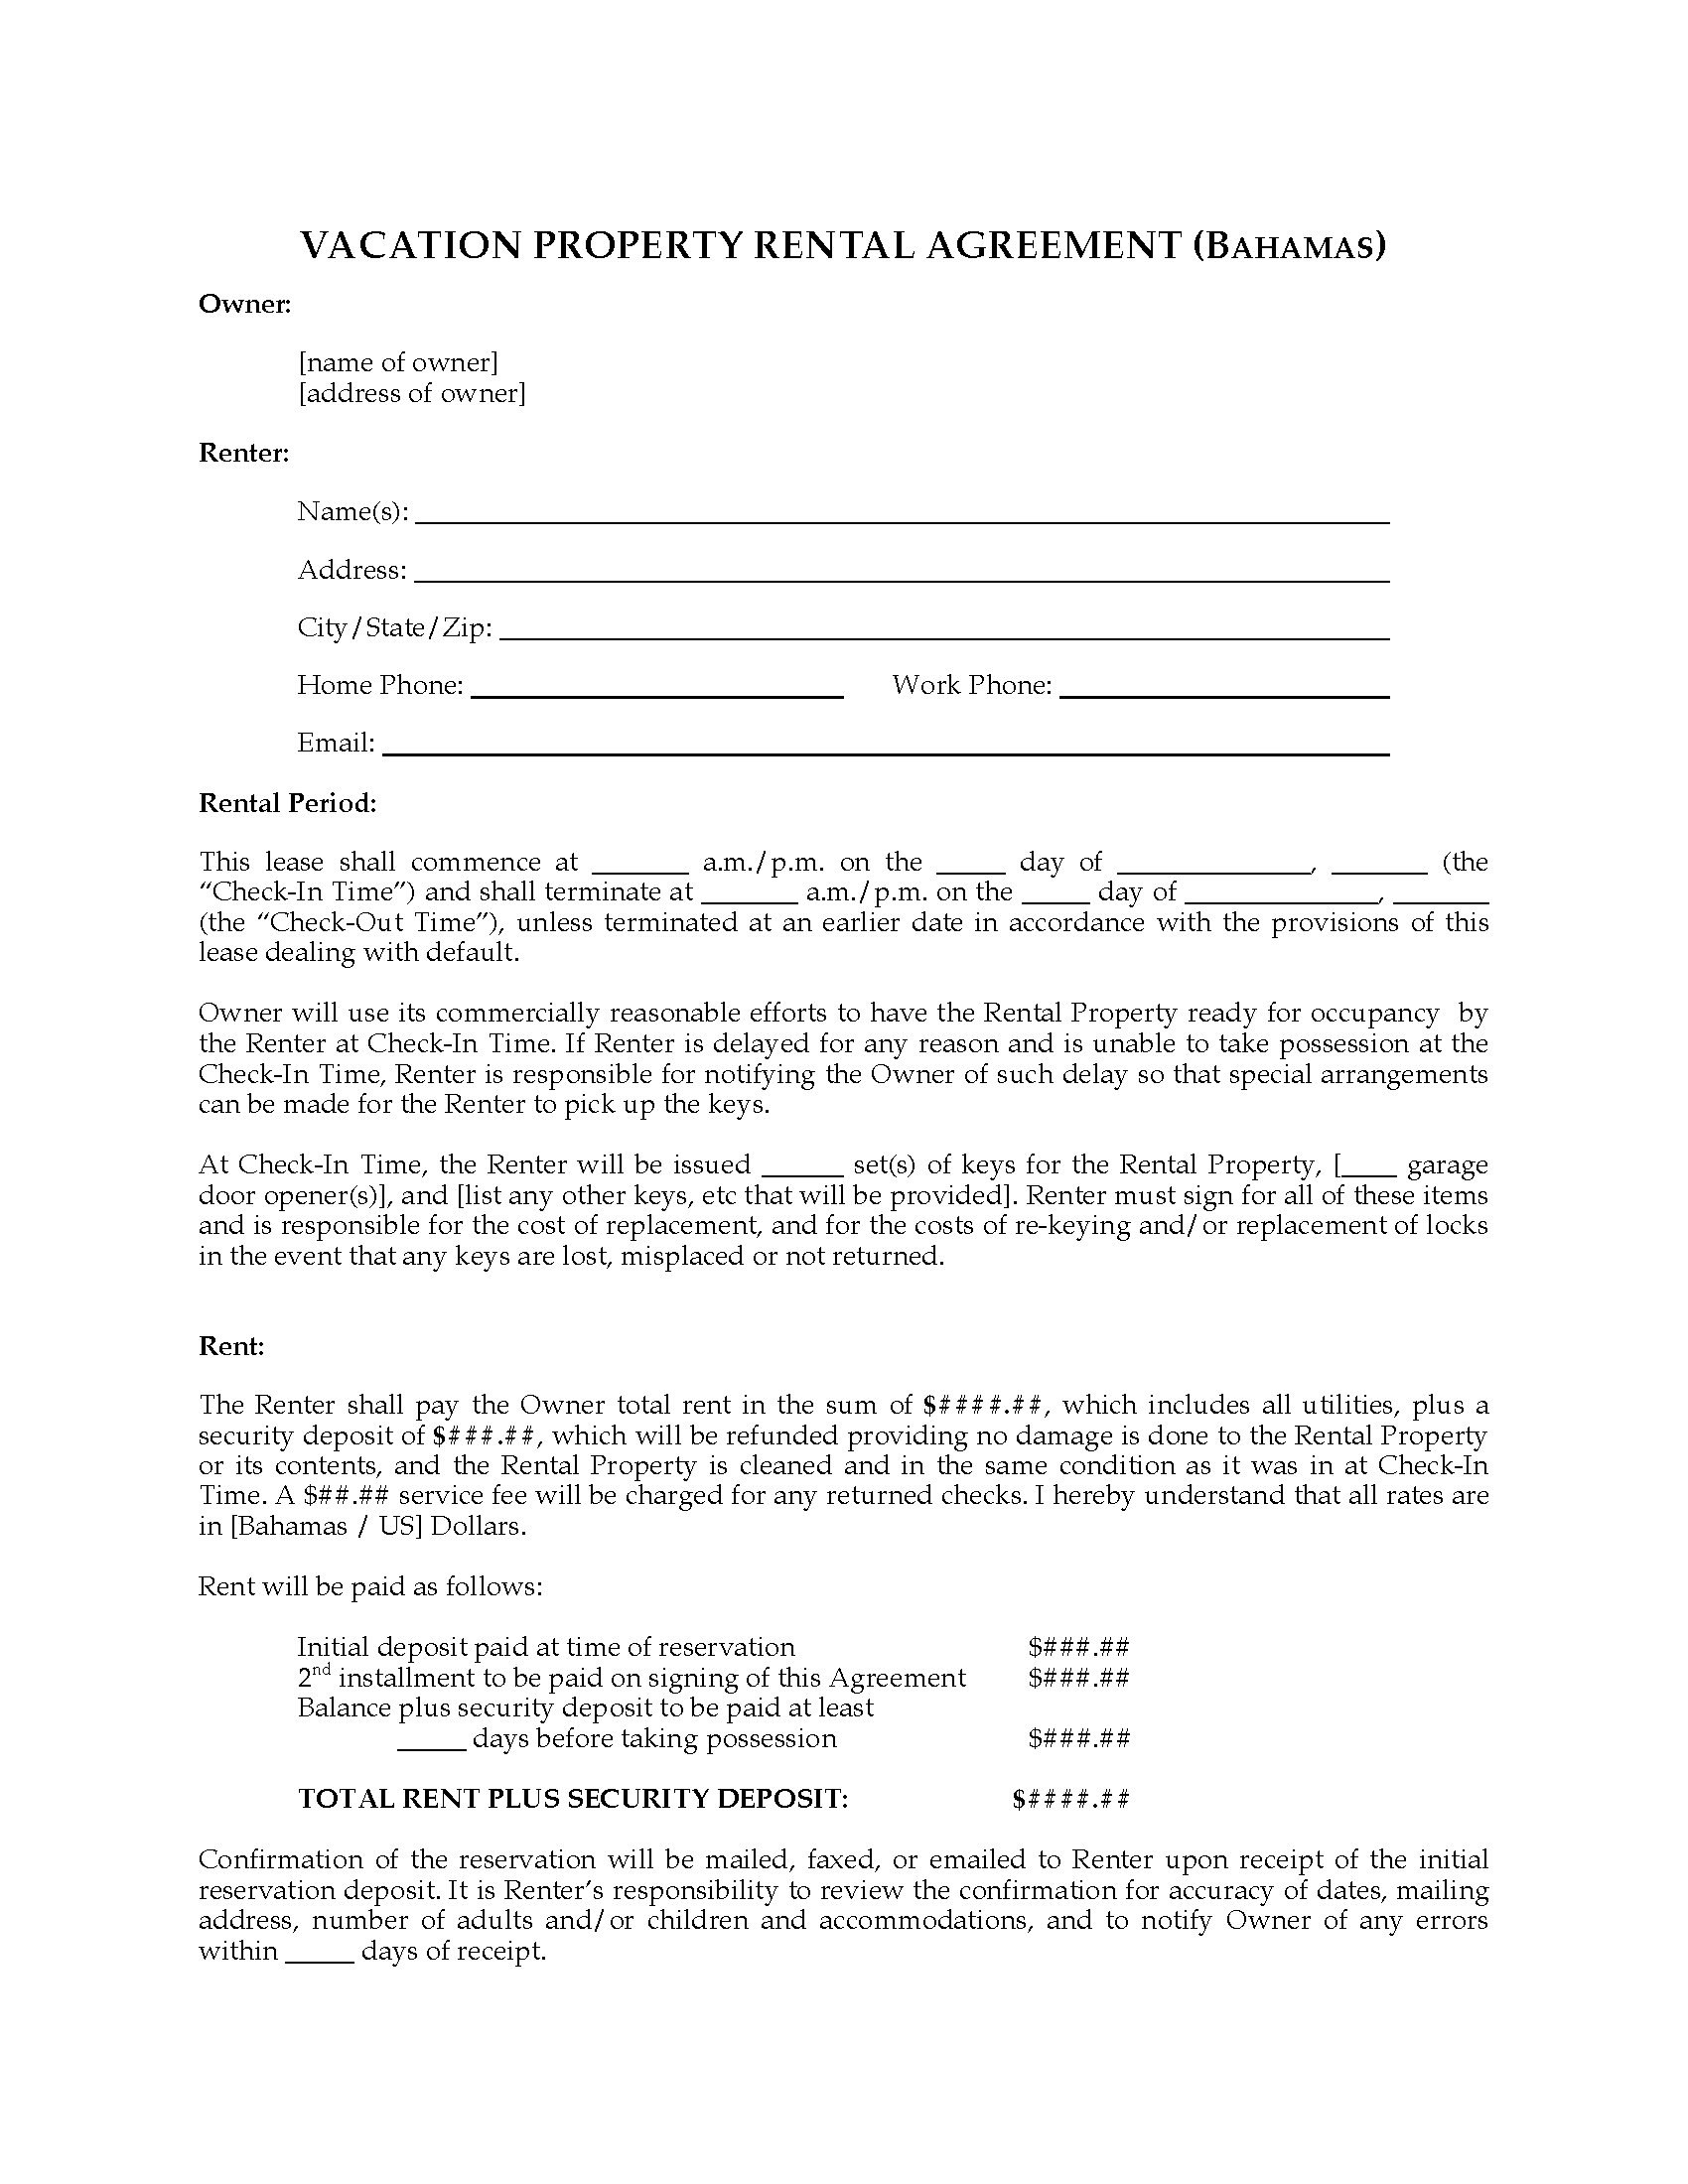 Bahamas Vacation Property Rental Agreement  Legal Forms And Throughout Vacation Home Rental Agreement Template